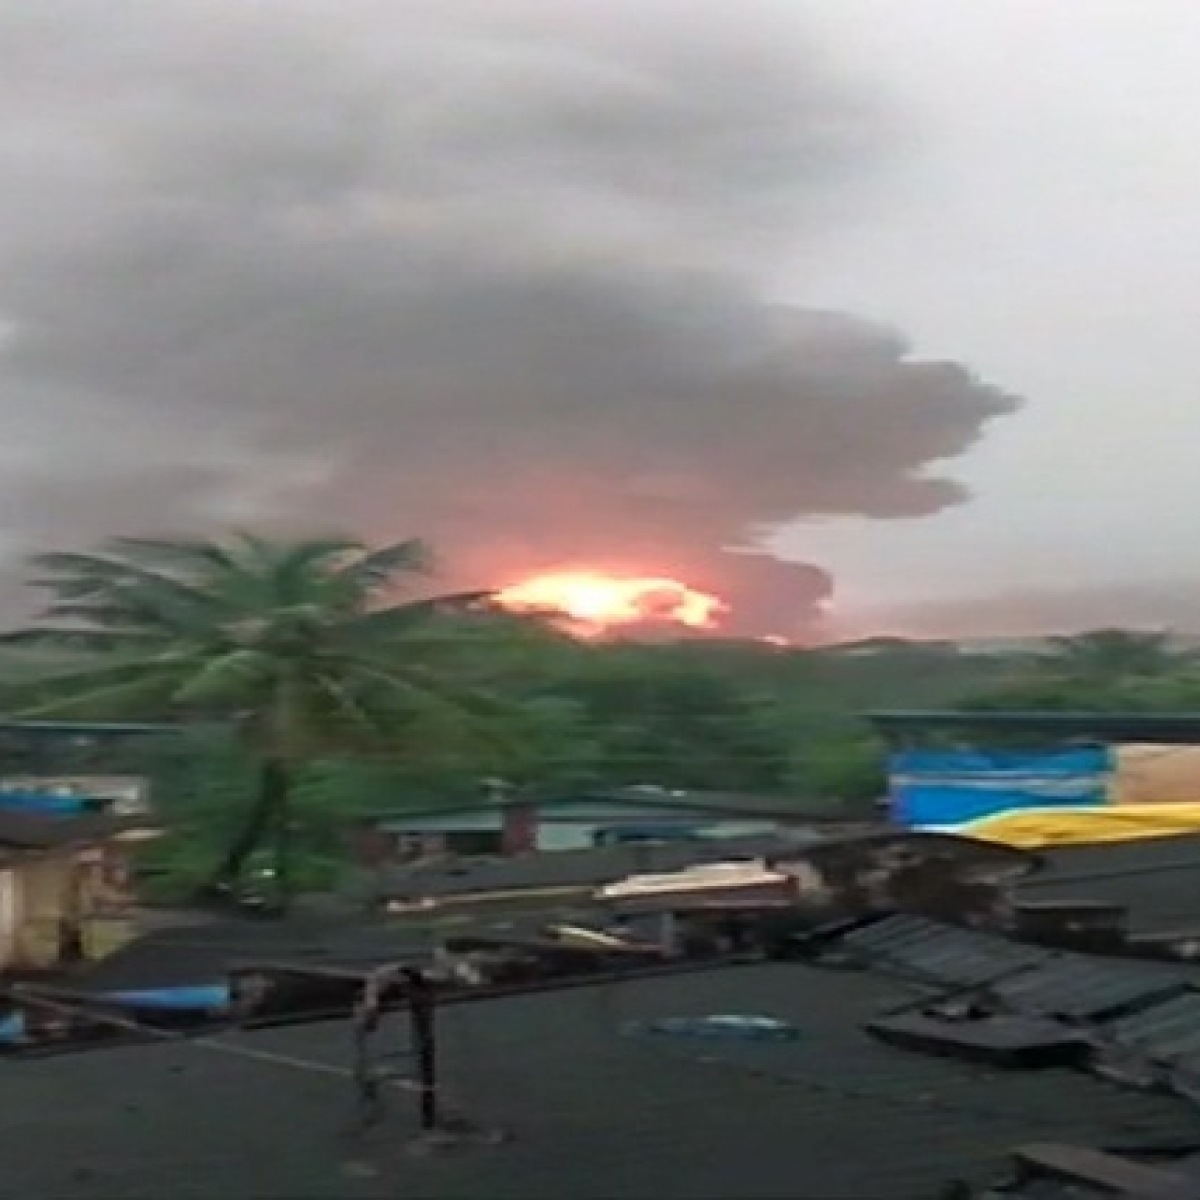 Navi Mumbai: 4 killed, 3 injured as massive fire breaks out at ONGC plant in Uran